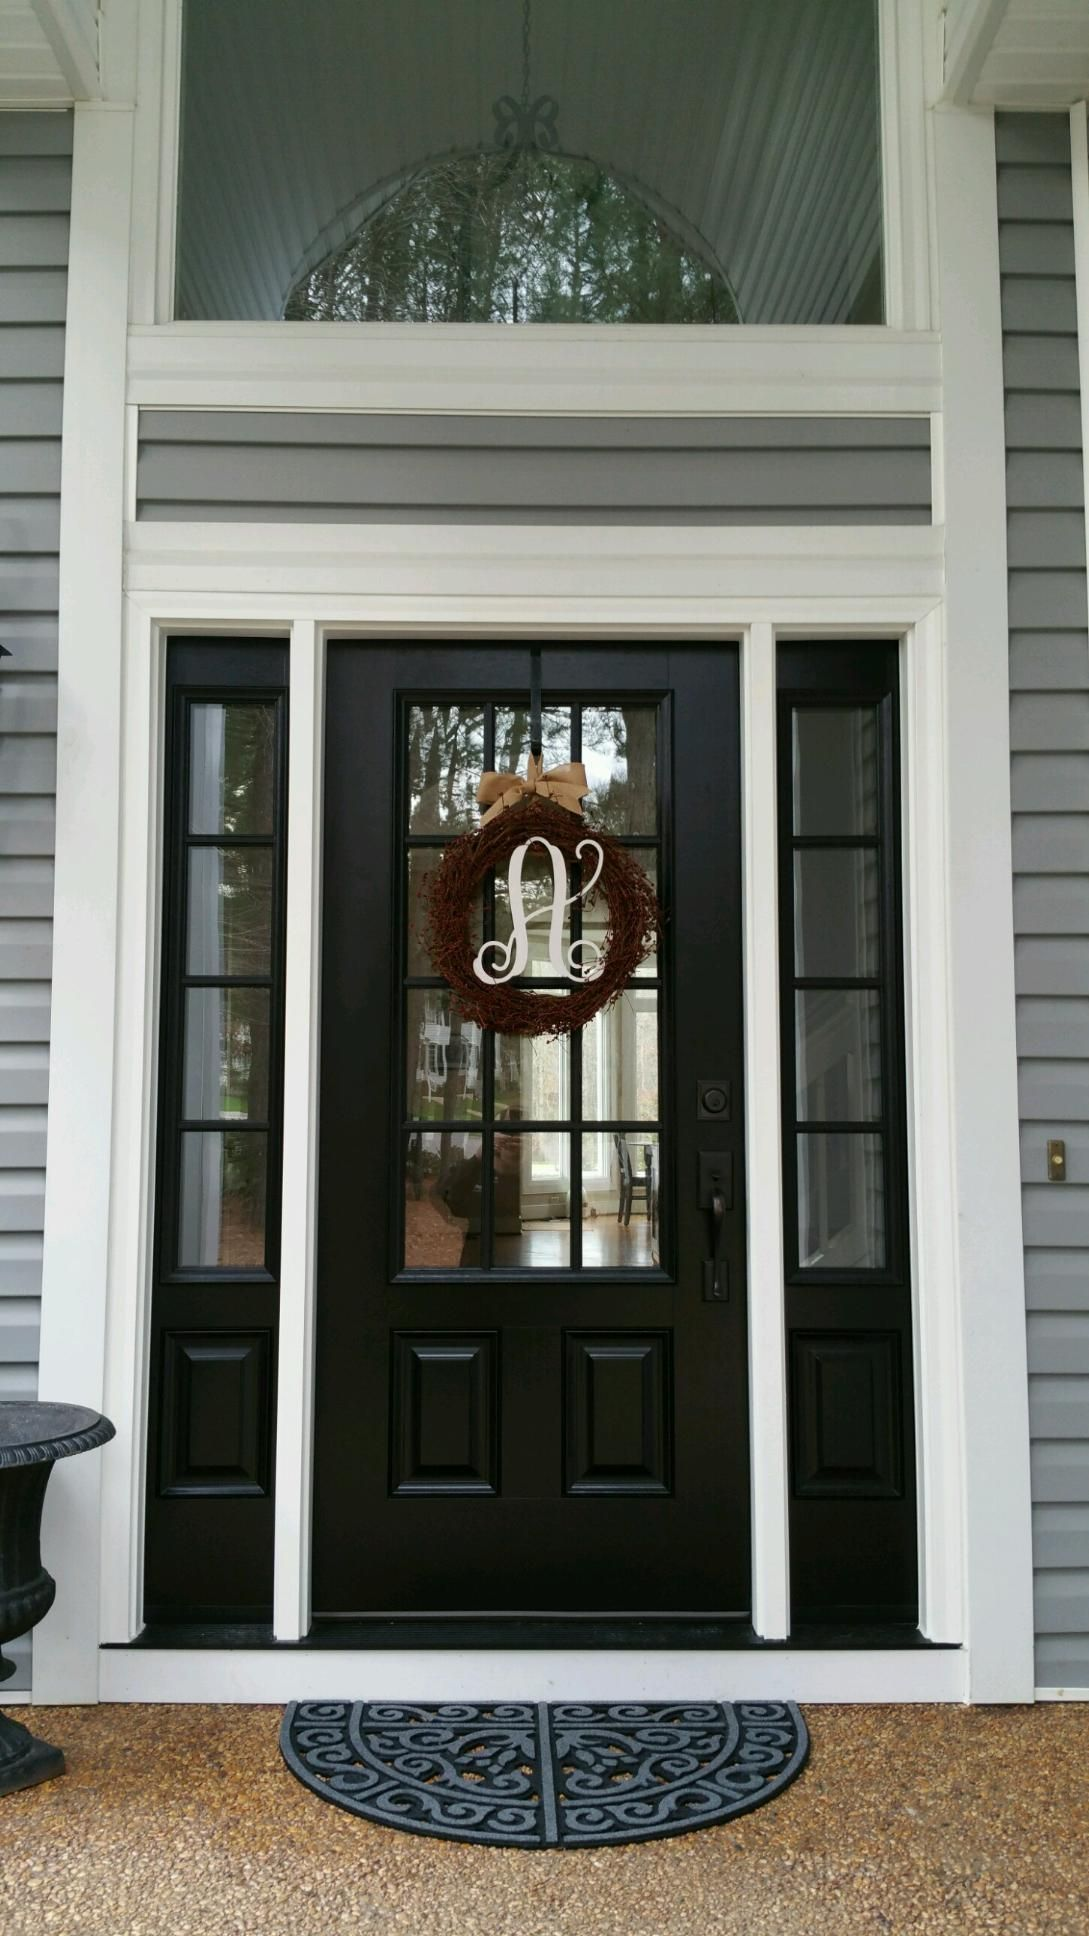 Model 440 Signet Fiberglass Front Entry Door Coal Black With Aged Bronze Finish Hardware